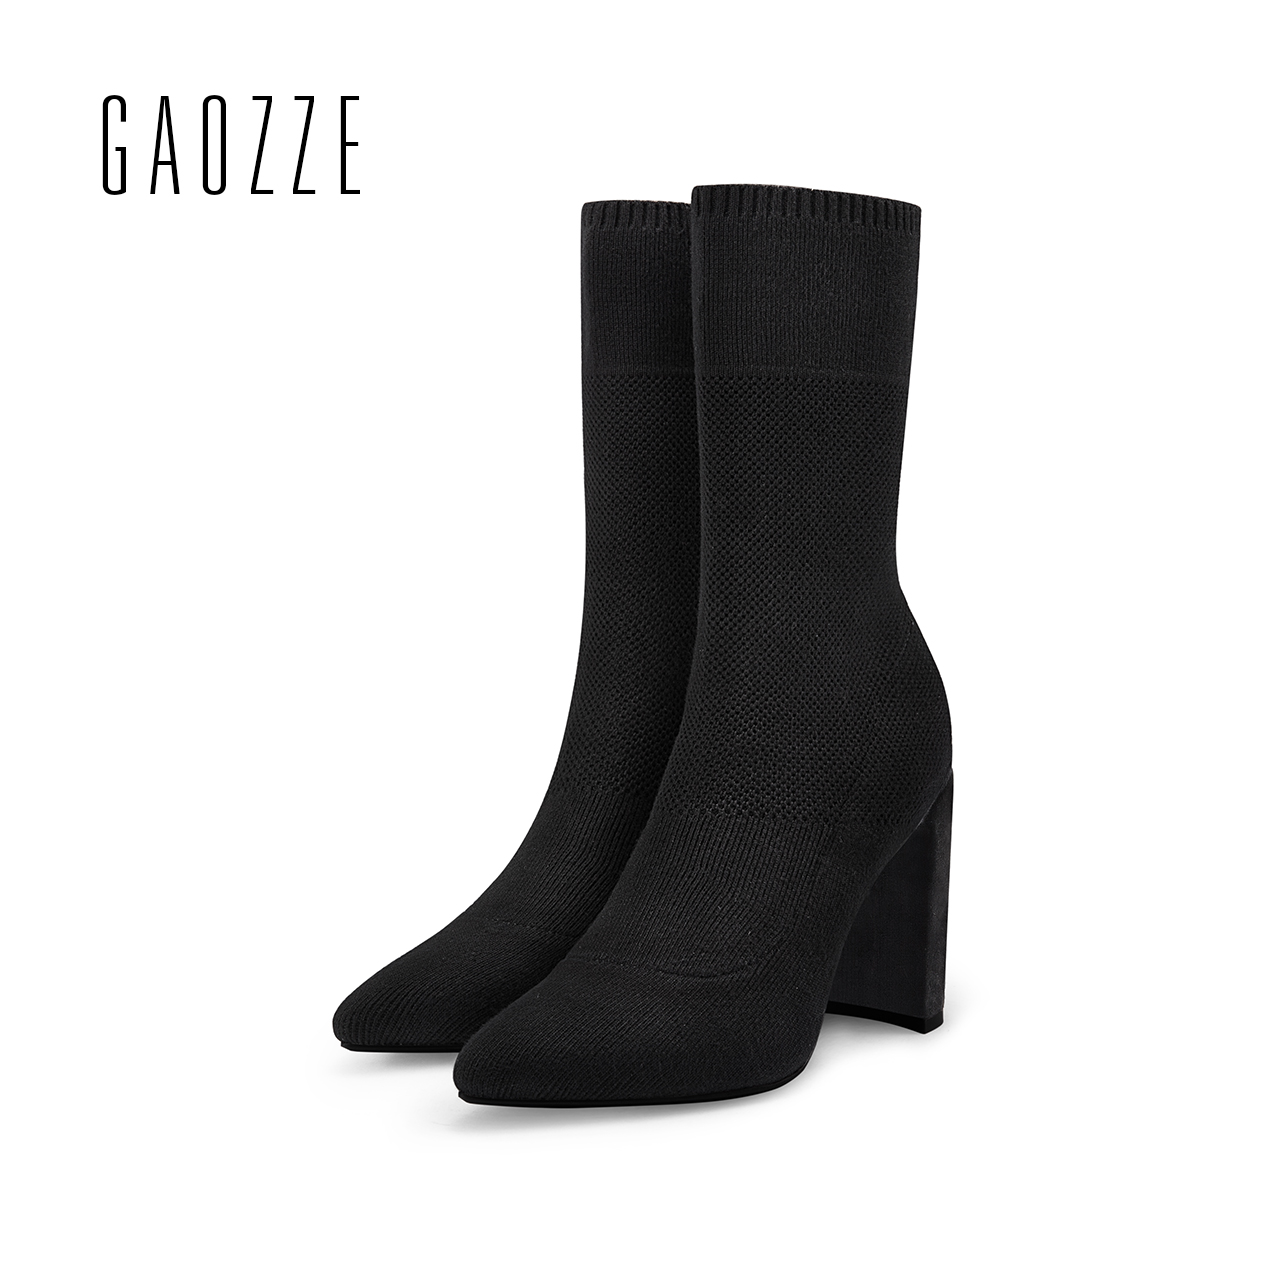 GAOZZE Fashion Women Socks Boots Mid-Calf Thick High Heels Boots Women Comfortable Elastic Knitted Fabric Female Boots Brand gaozze fashion women socks boots mid calf thick high heels boots women comfortable elastic knitted fabric female boots brand